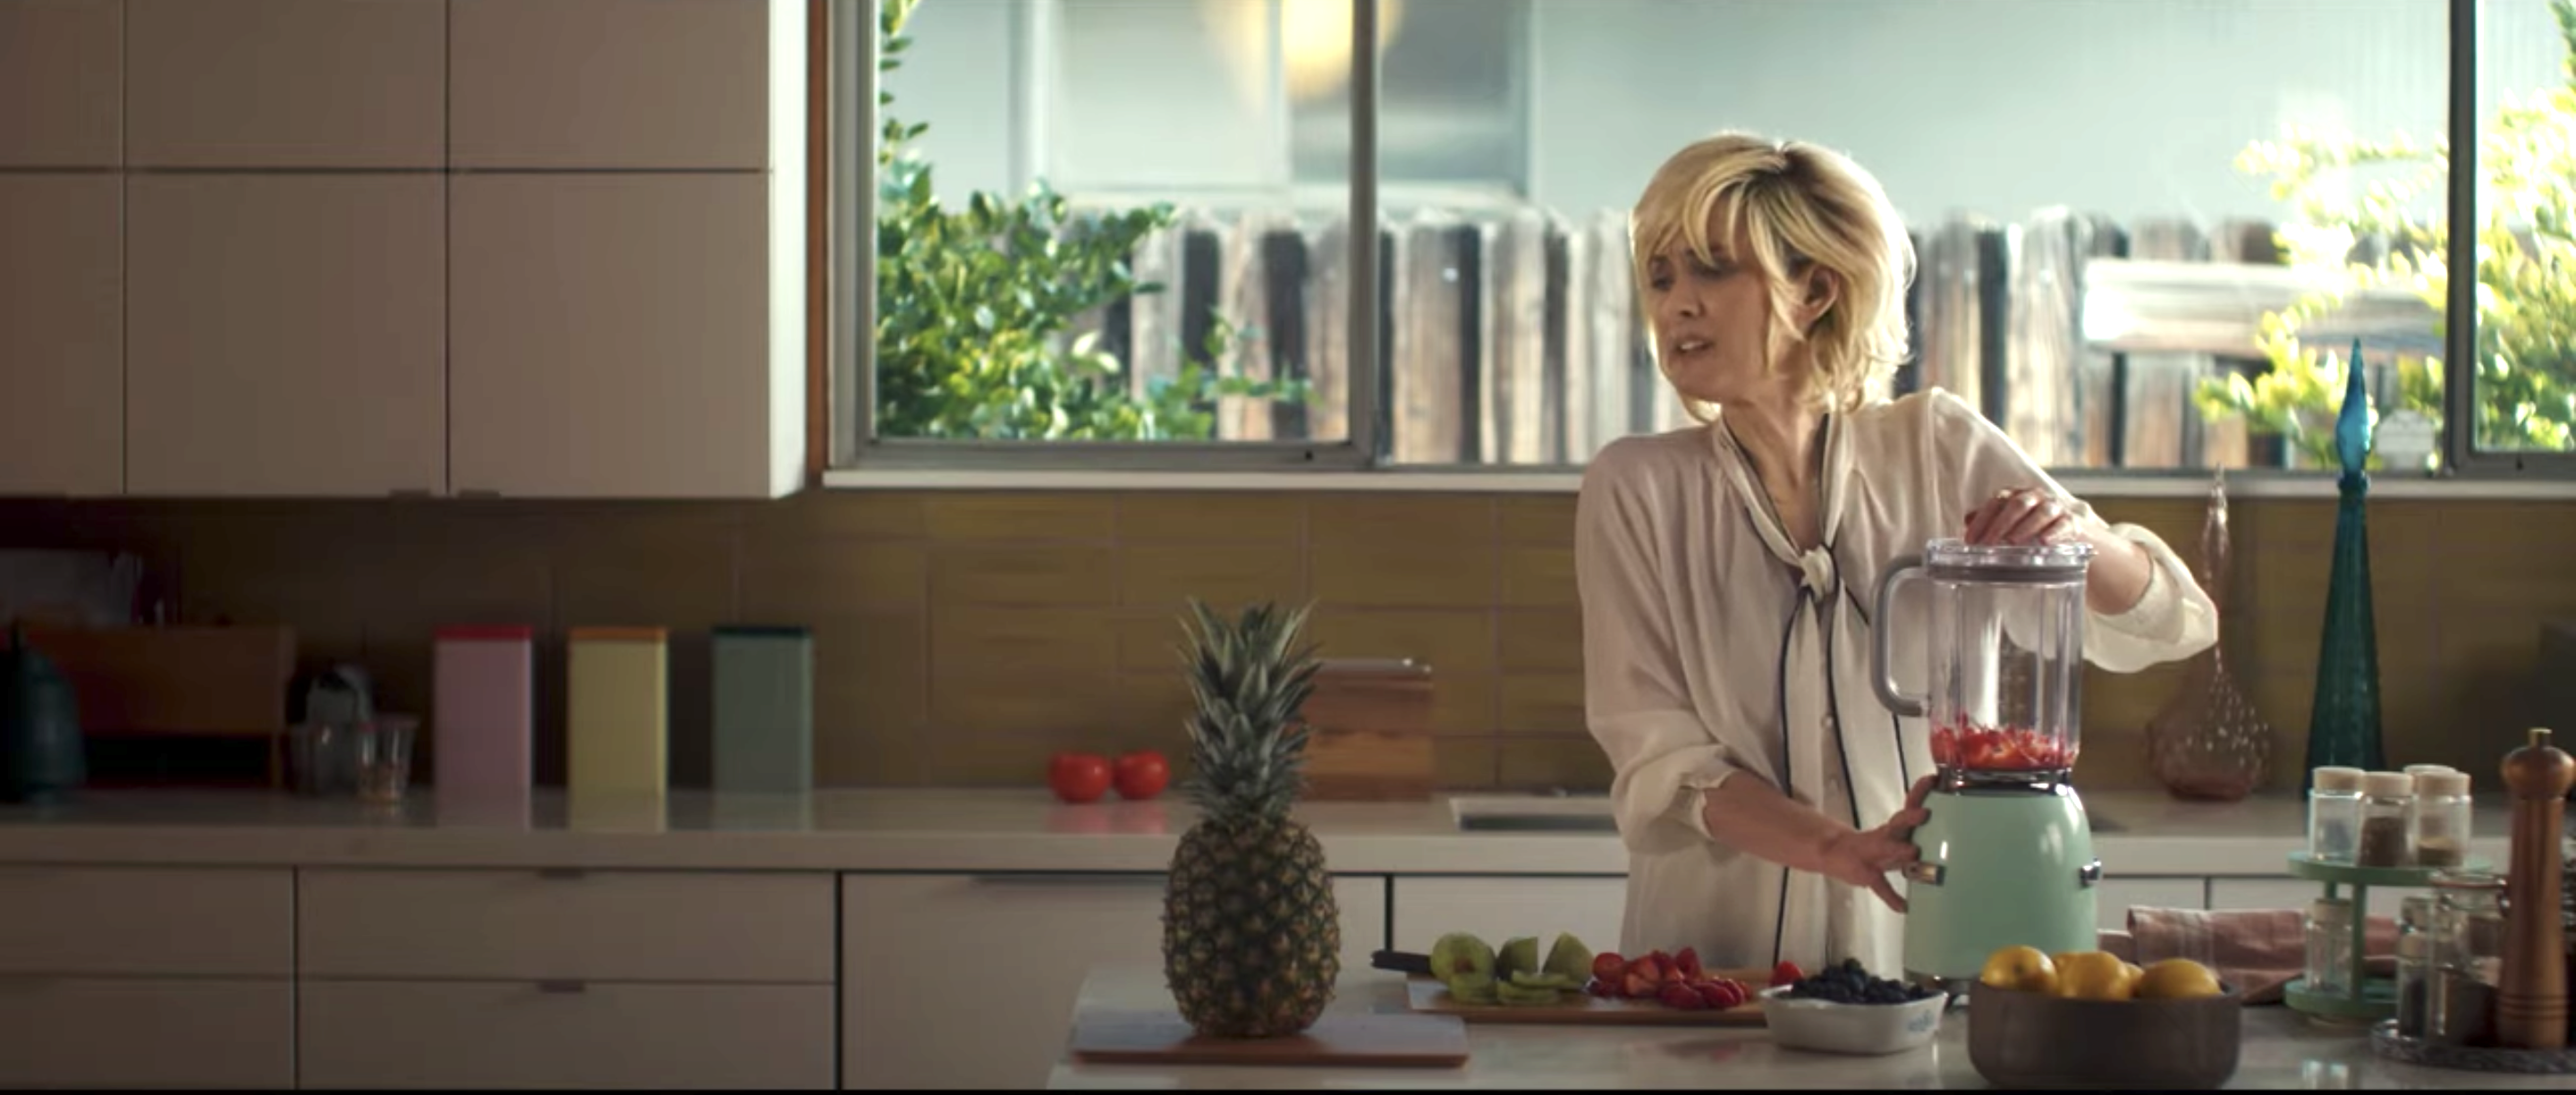 Winona as Momma Boggs placing fruit into a blender